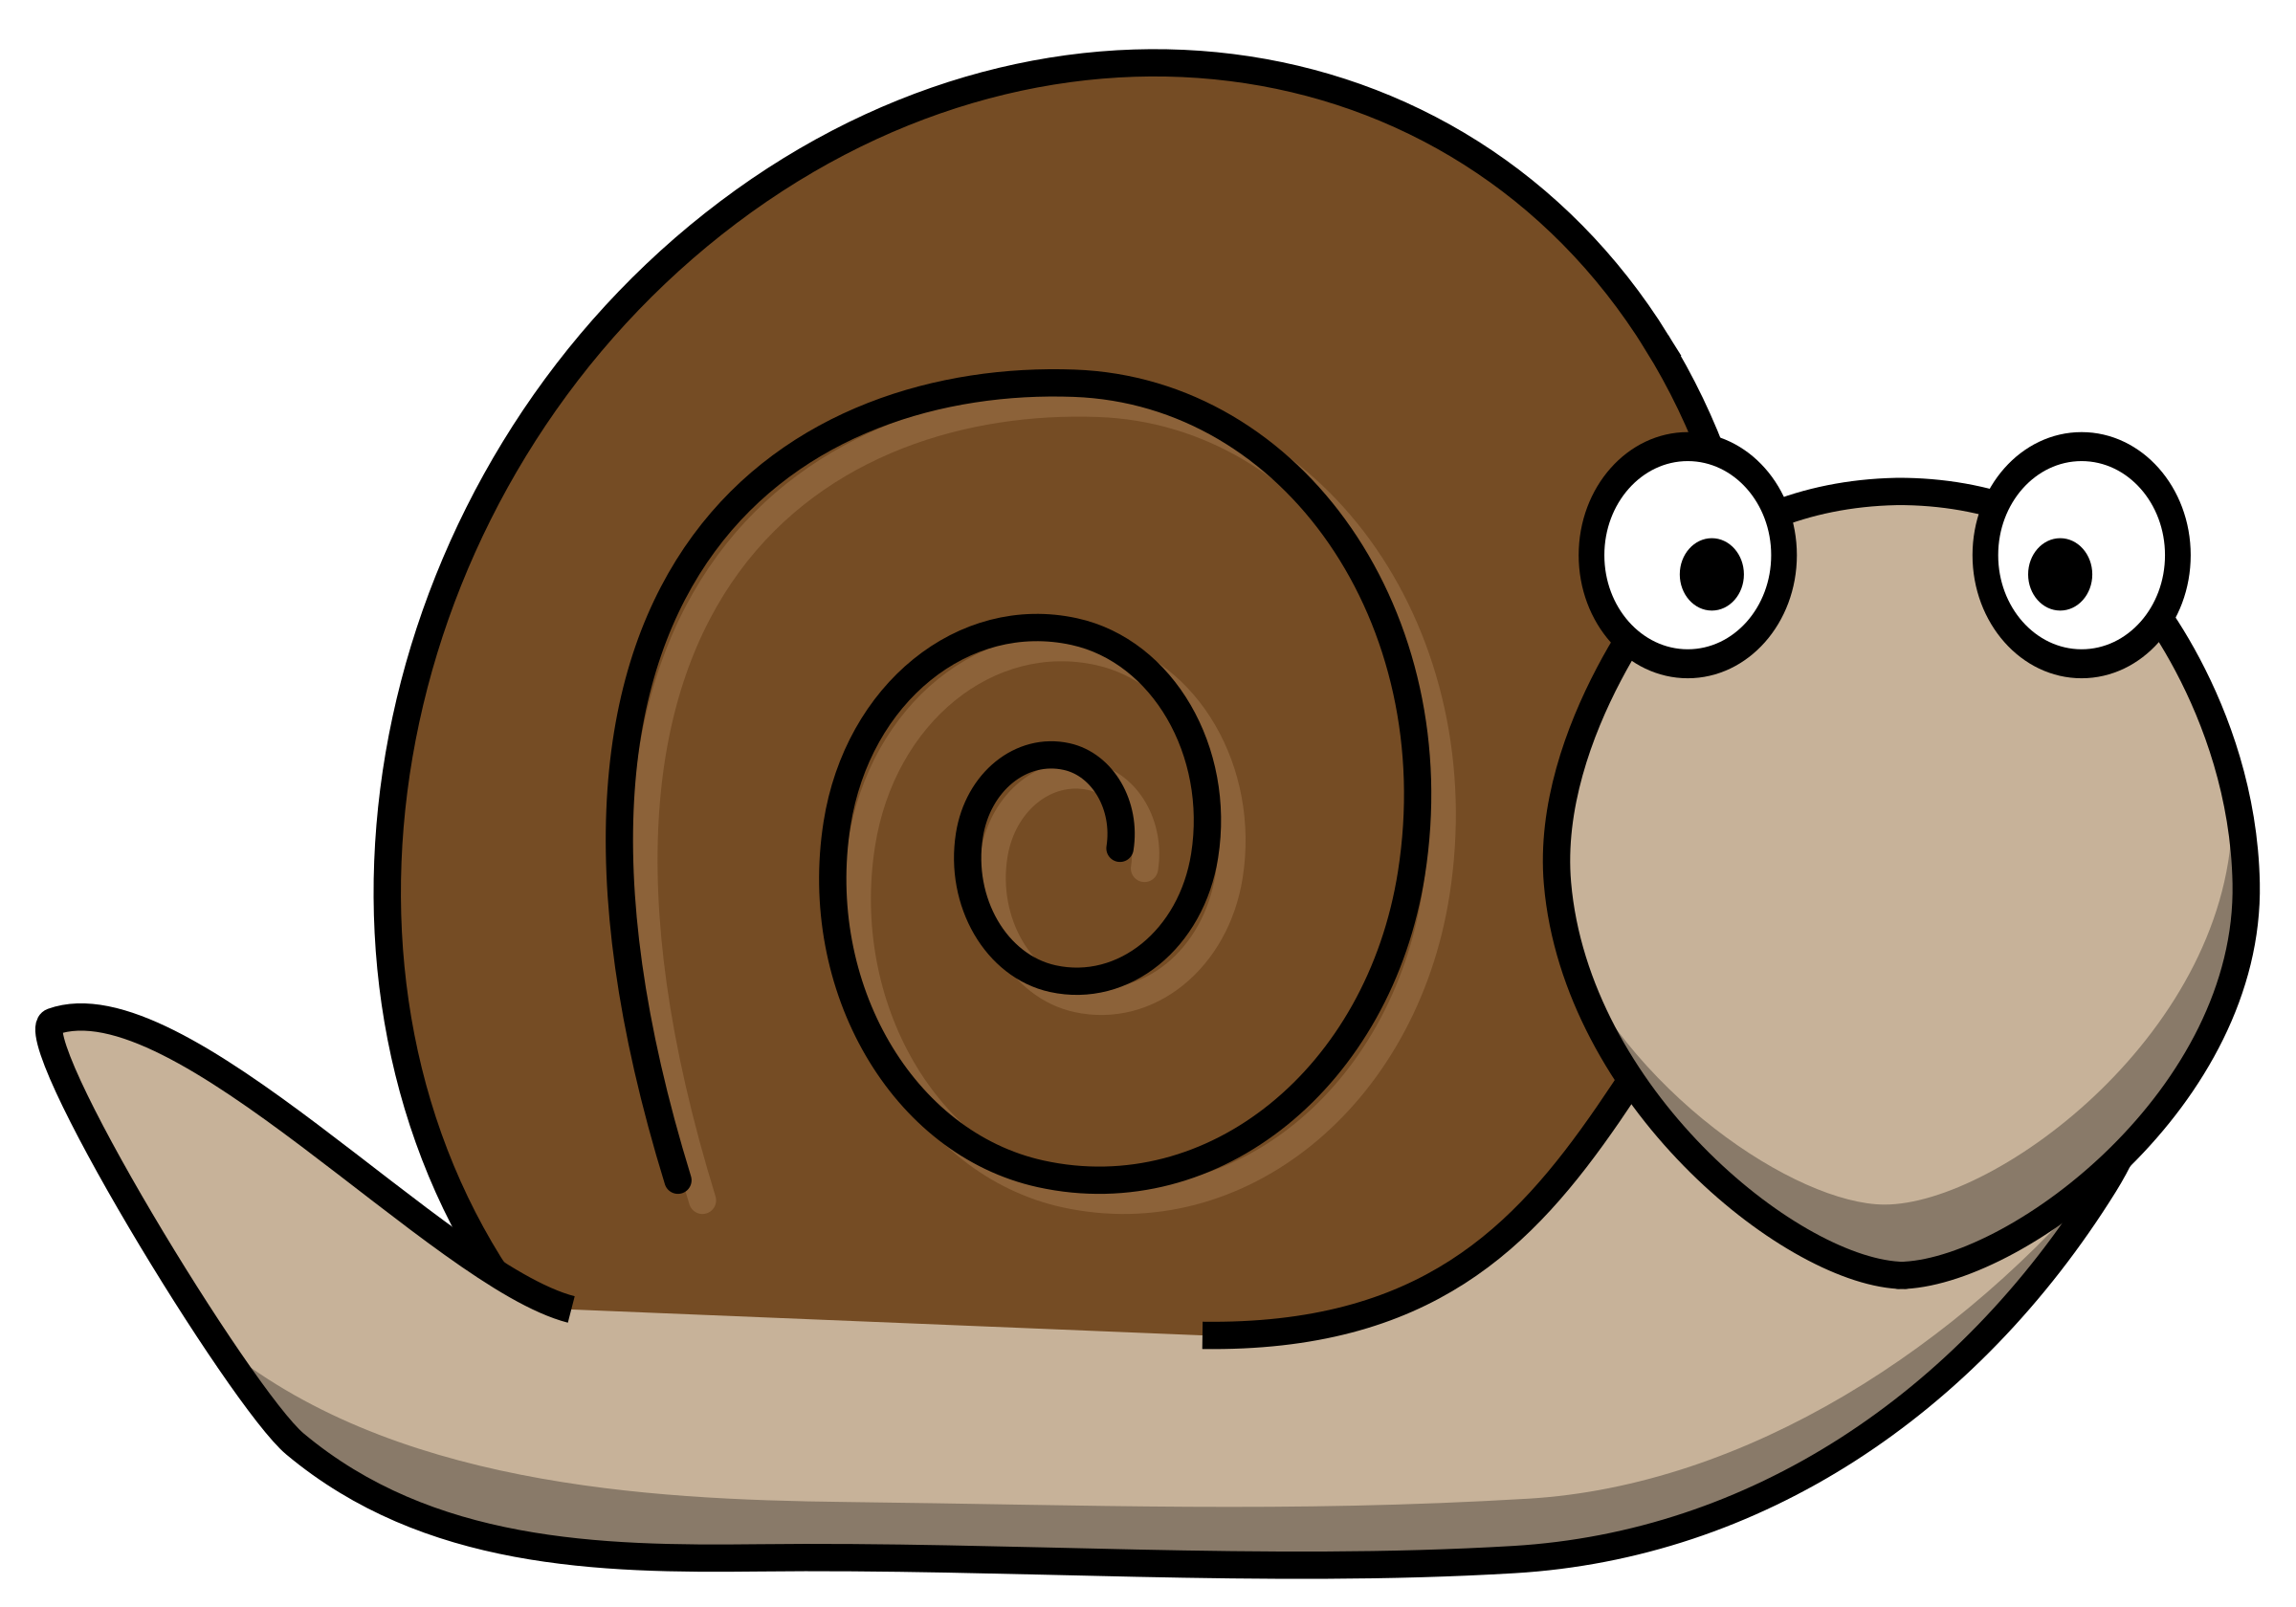 By hatso in the. Woodland clipart snail